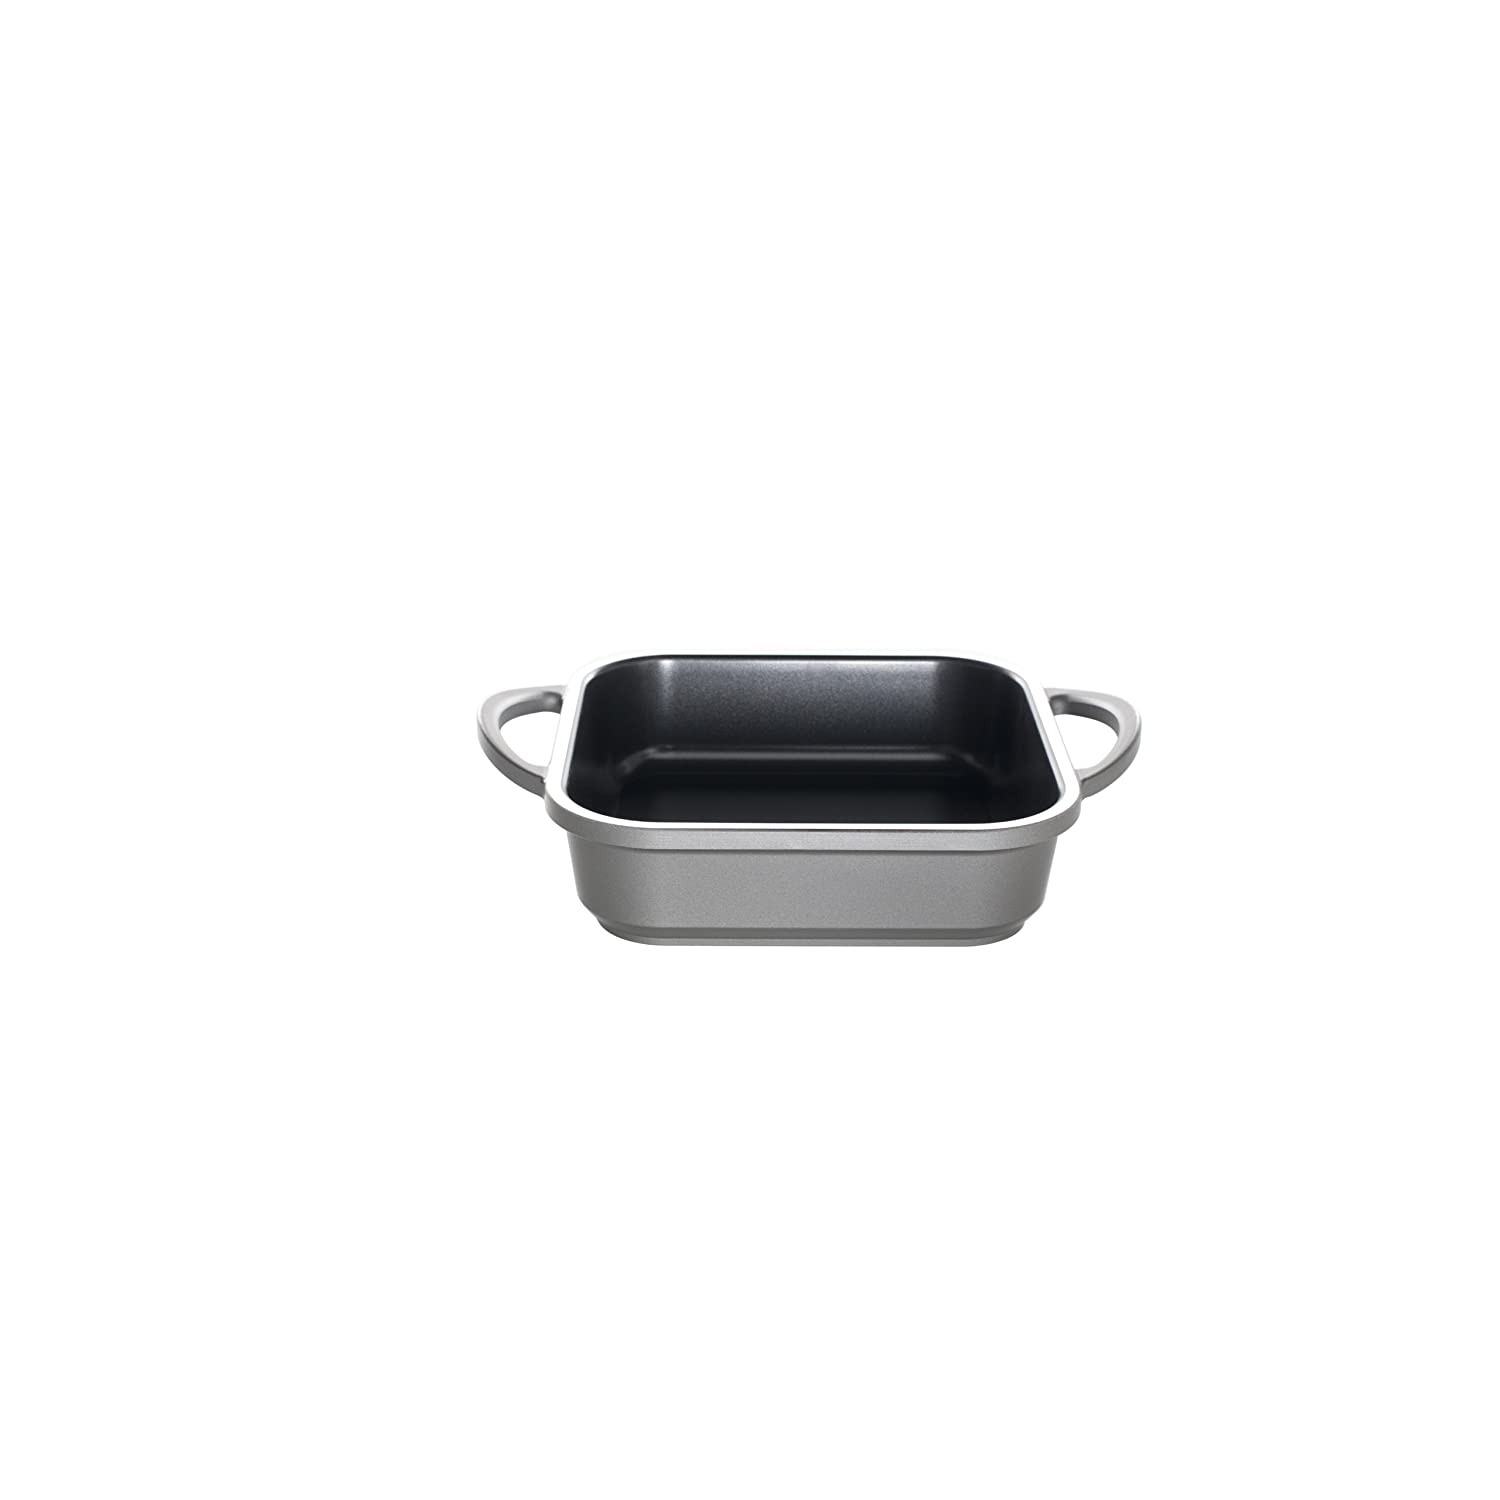 Nordic Ware Pro Cast Traditions Enameled Square Baking Pan 9-Inch by 9-Inch ブルー 20926M B008XGY0VI  スレート 9-Inch by 9-Inch